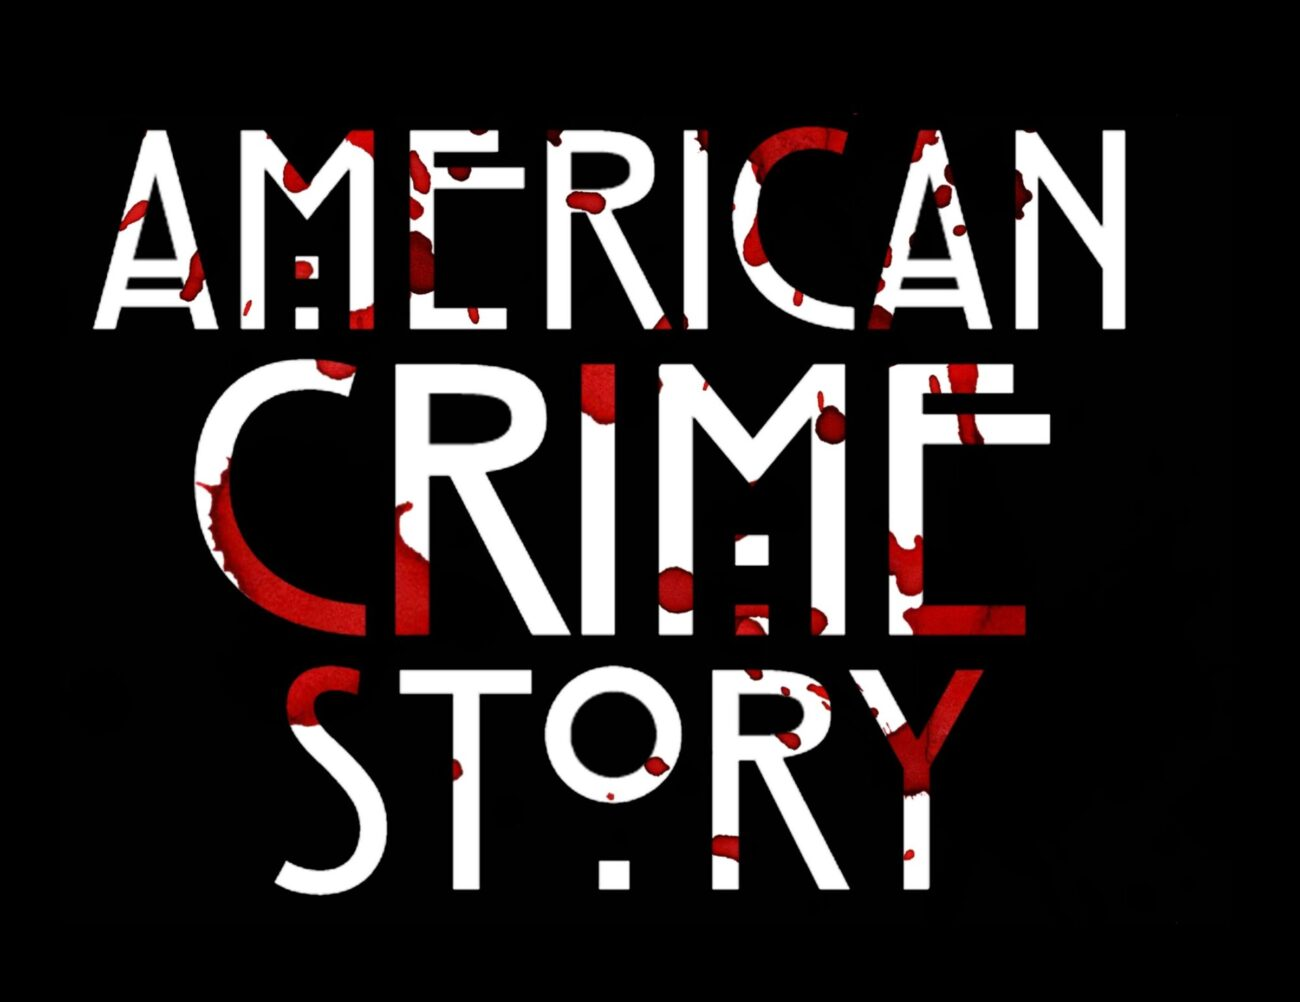 'American Crime Story' is ready to cover the story of a particular USA president and his impeachment story, but who is it for? Find out the deets here.